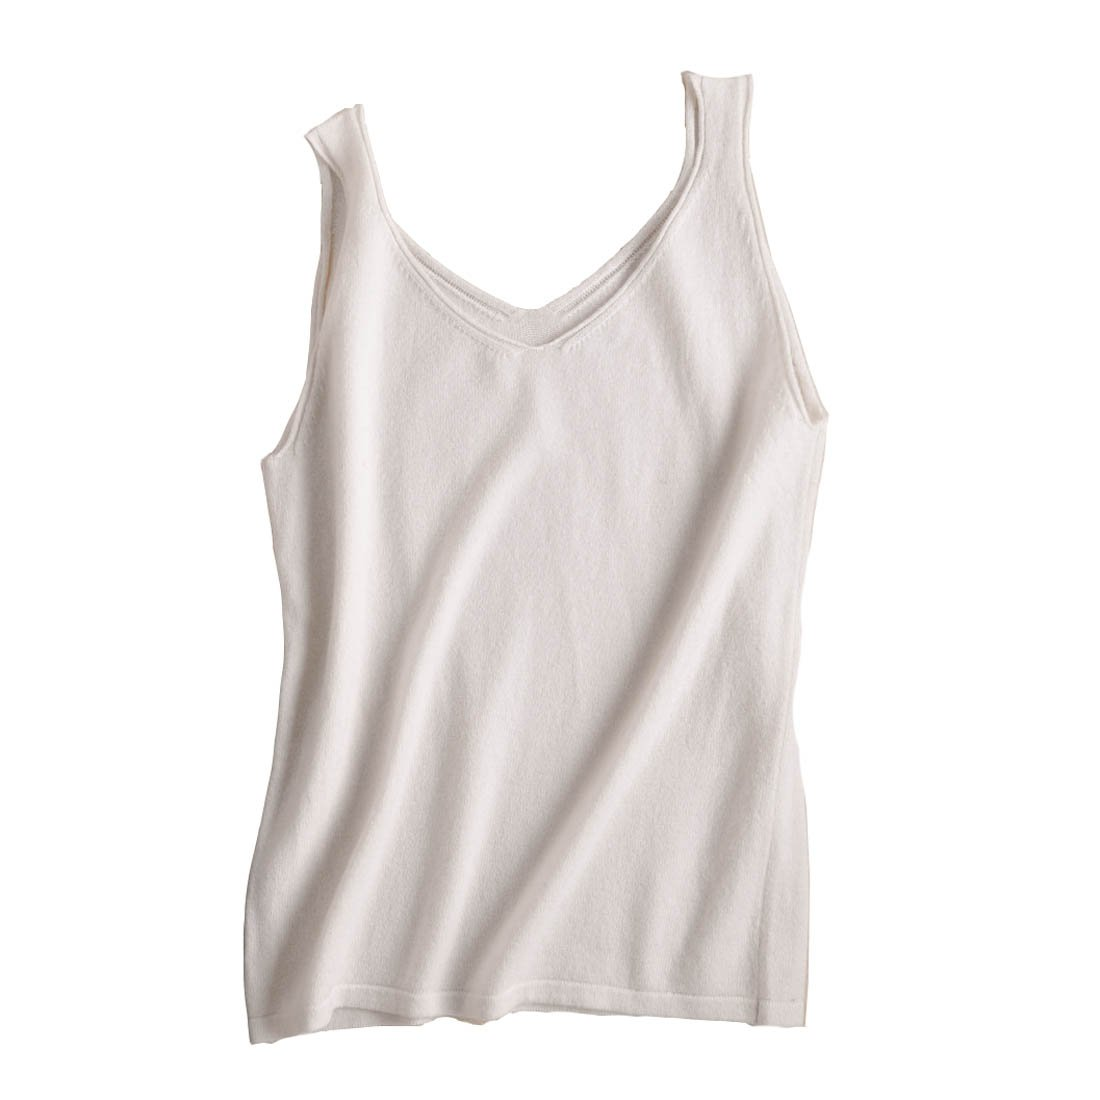 FINCATI White Tshirts Tank Tops 2018 Spring Summer Spaghetti Strap Soft Skin Friendly Sexy Slim V Neck (B-White, L)